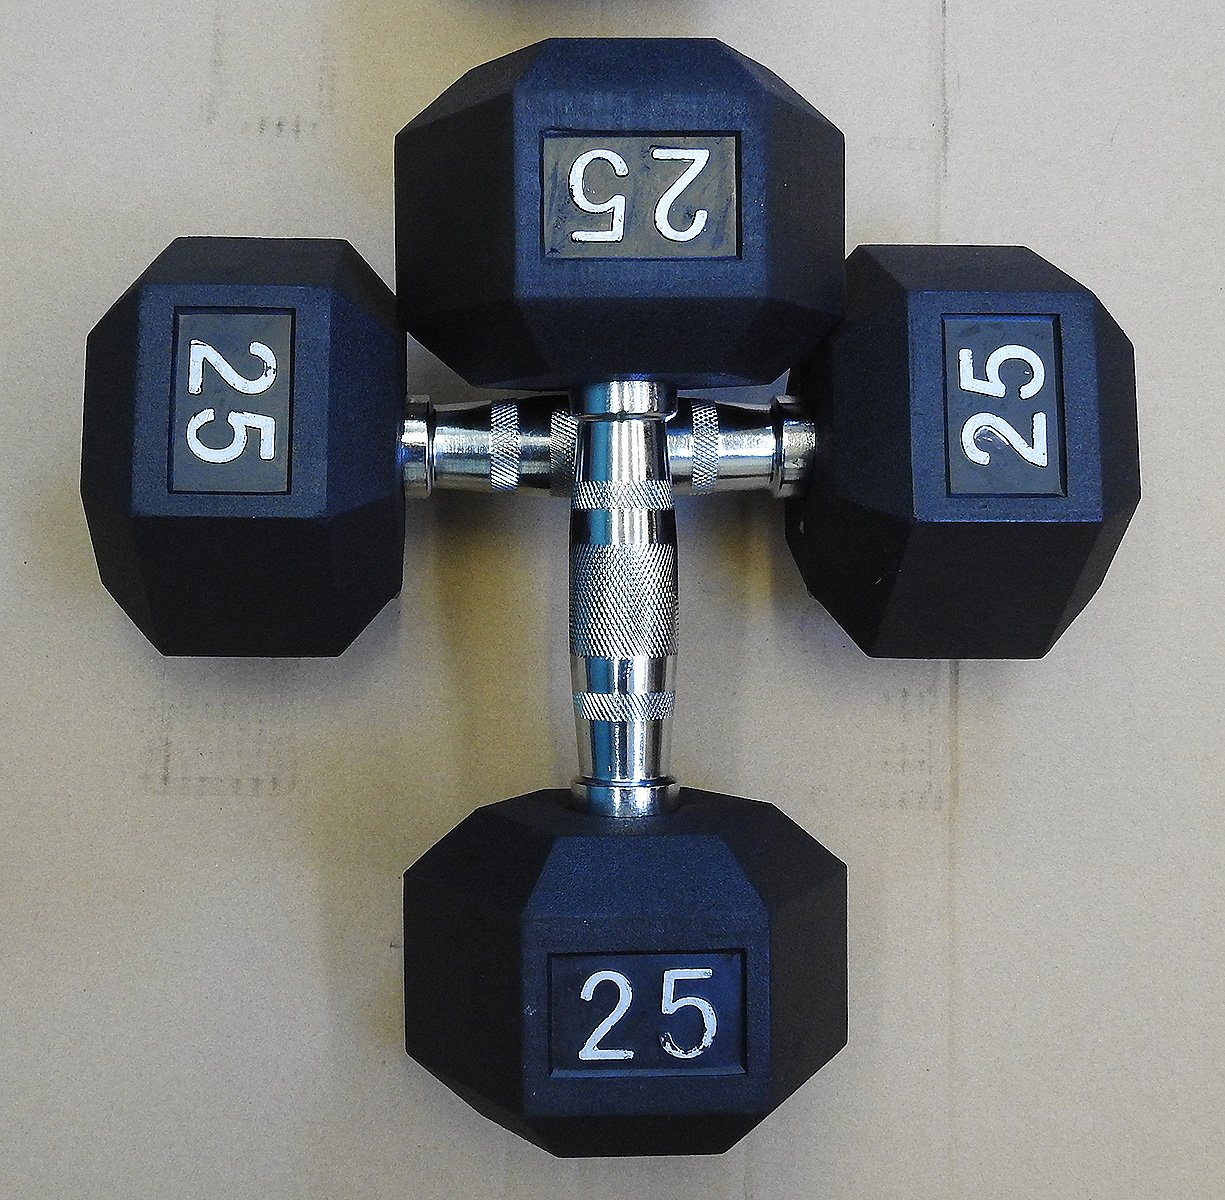 New York Barbells Premium Quality, Rubber Coated Hex Dumbbells For Strength Training and Fitness (Sold in Pairs)